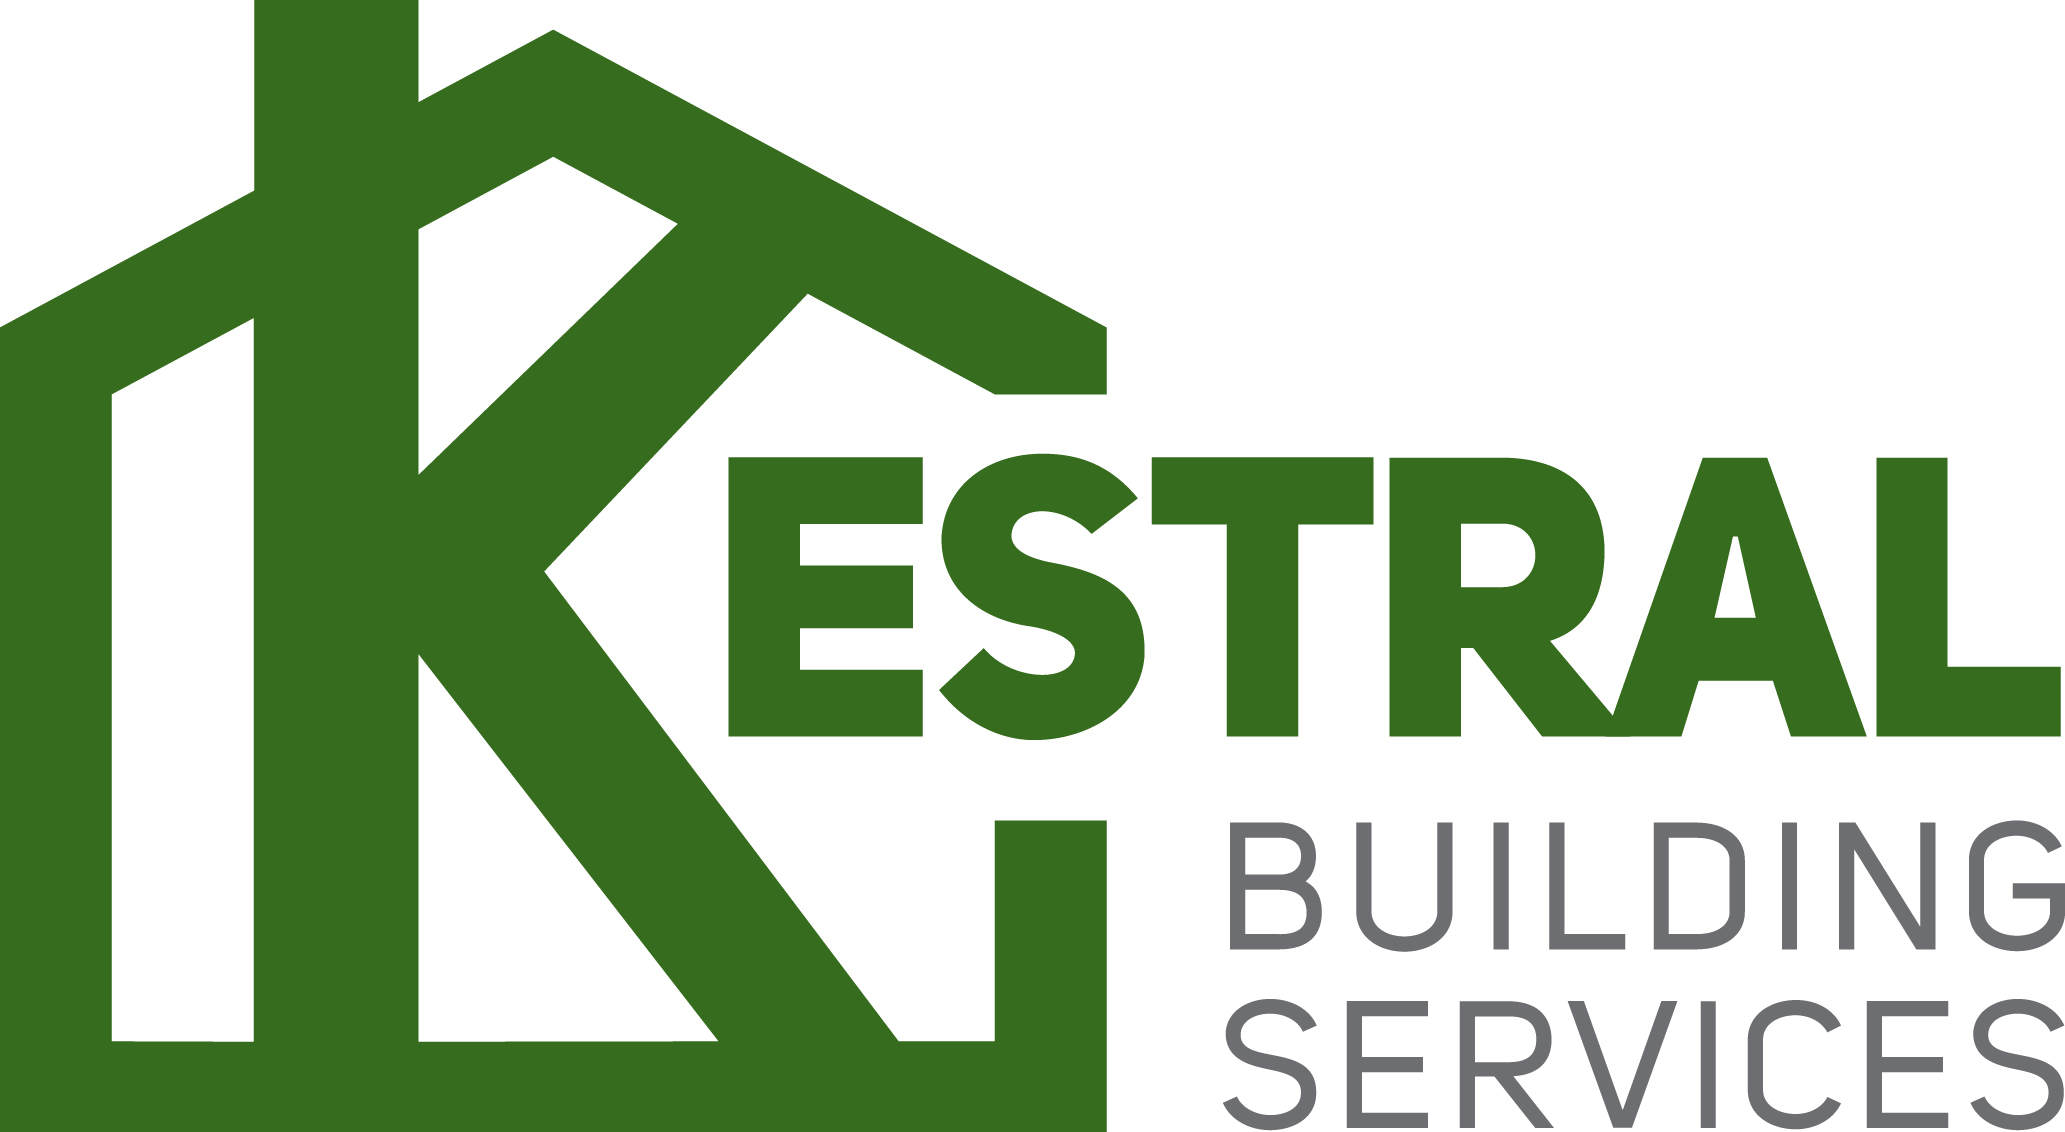 Kestral Building Service Burton On Trent